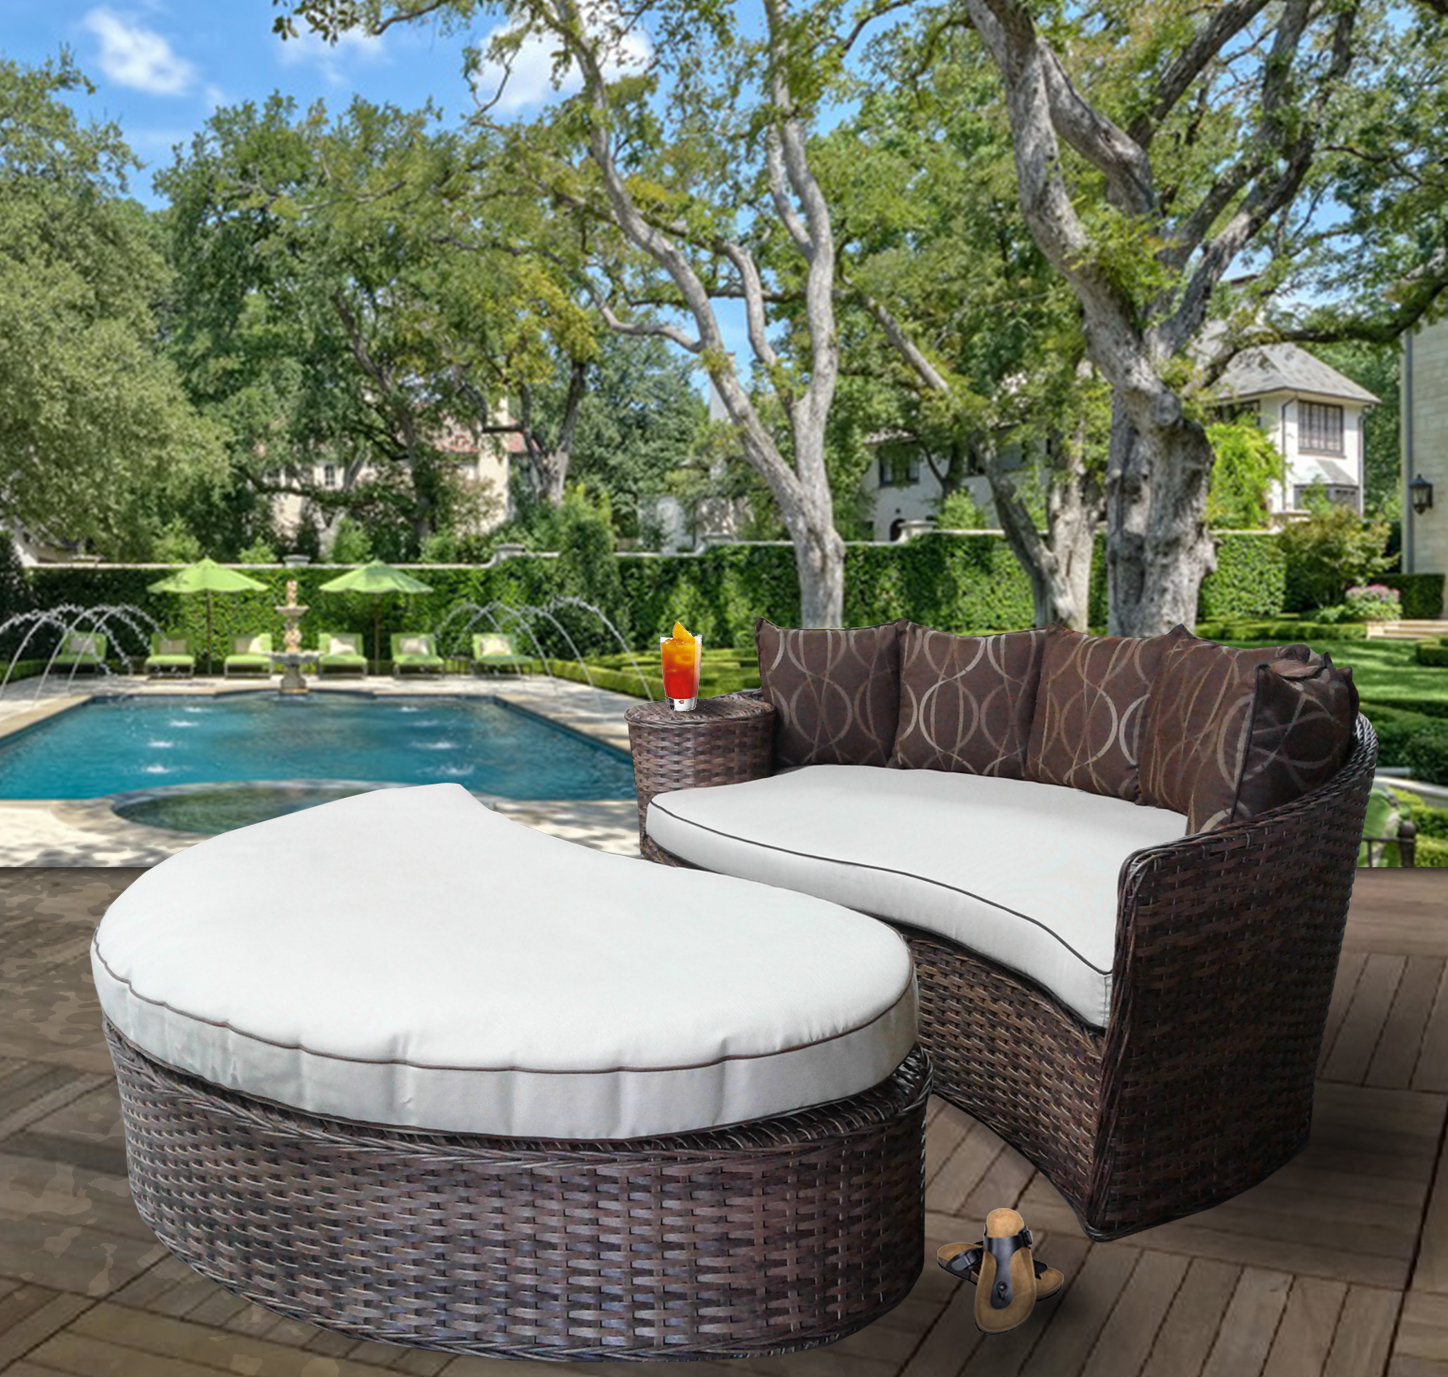 Duran Deluxe Patio Daybed With Cushions With Regard To Fashionable Keiran Patio Daybeds With Cushions (View 4 of 20)